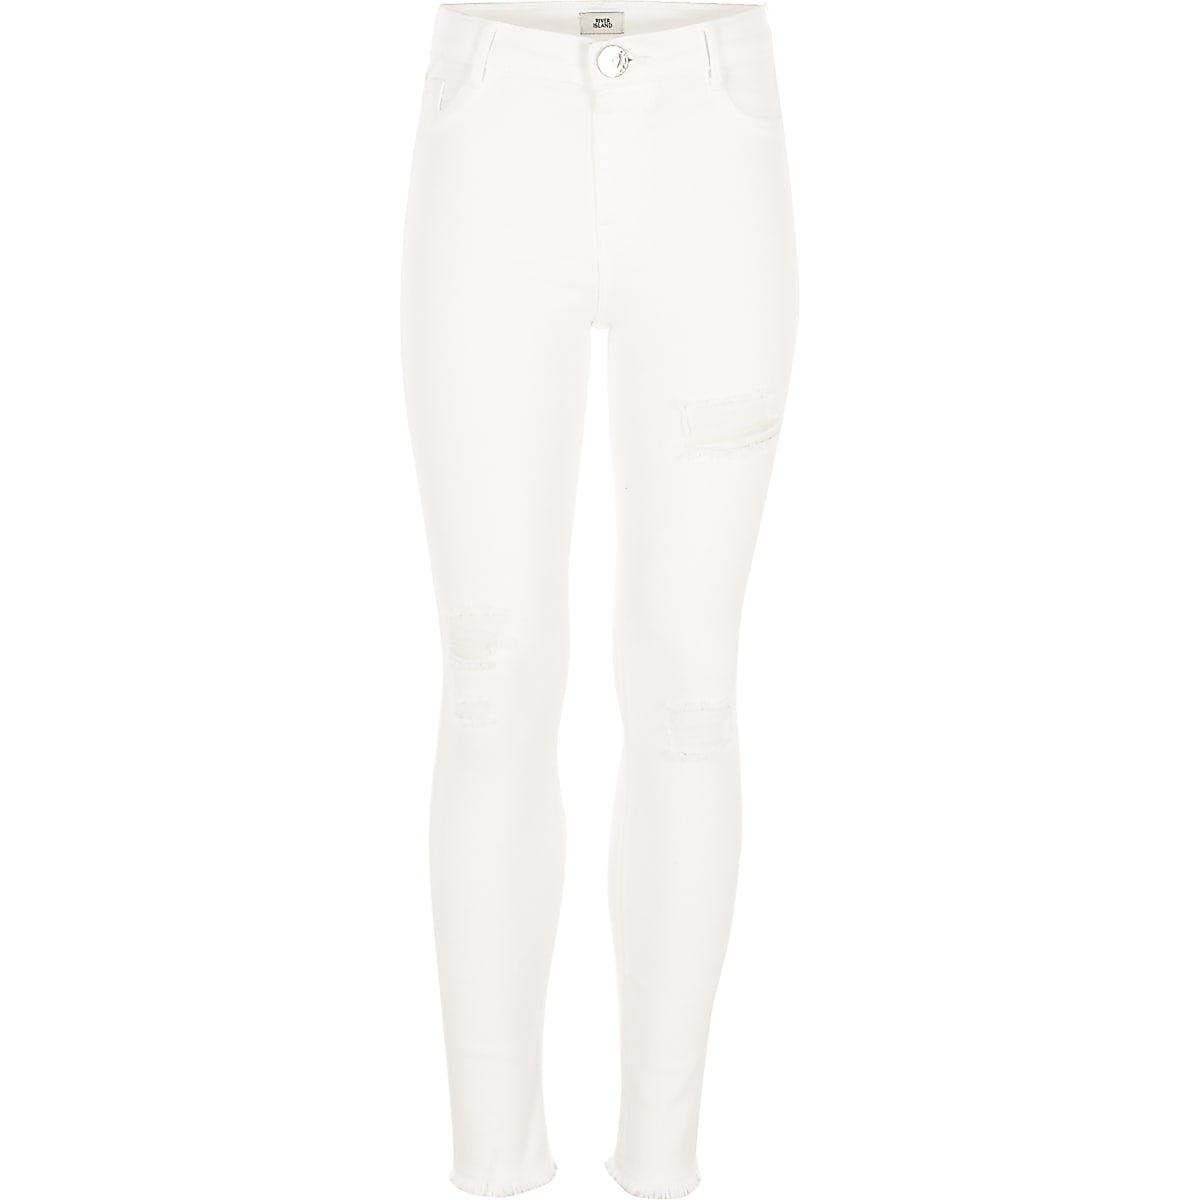 Molly - Witte ripped jegging voor meisjes